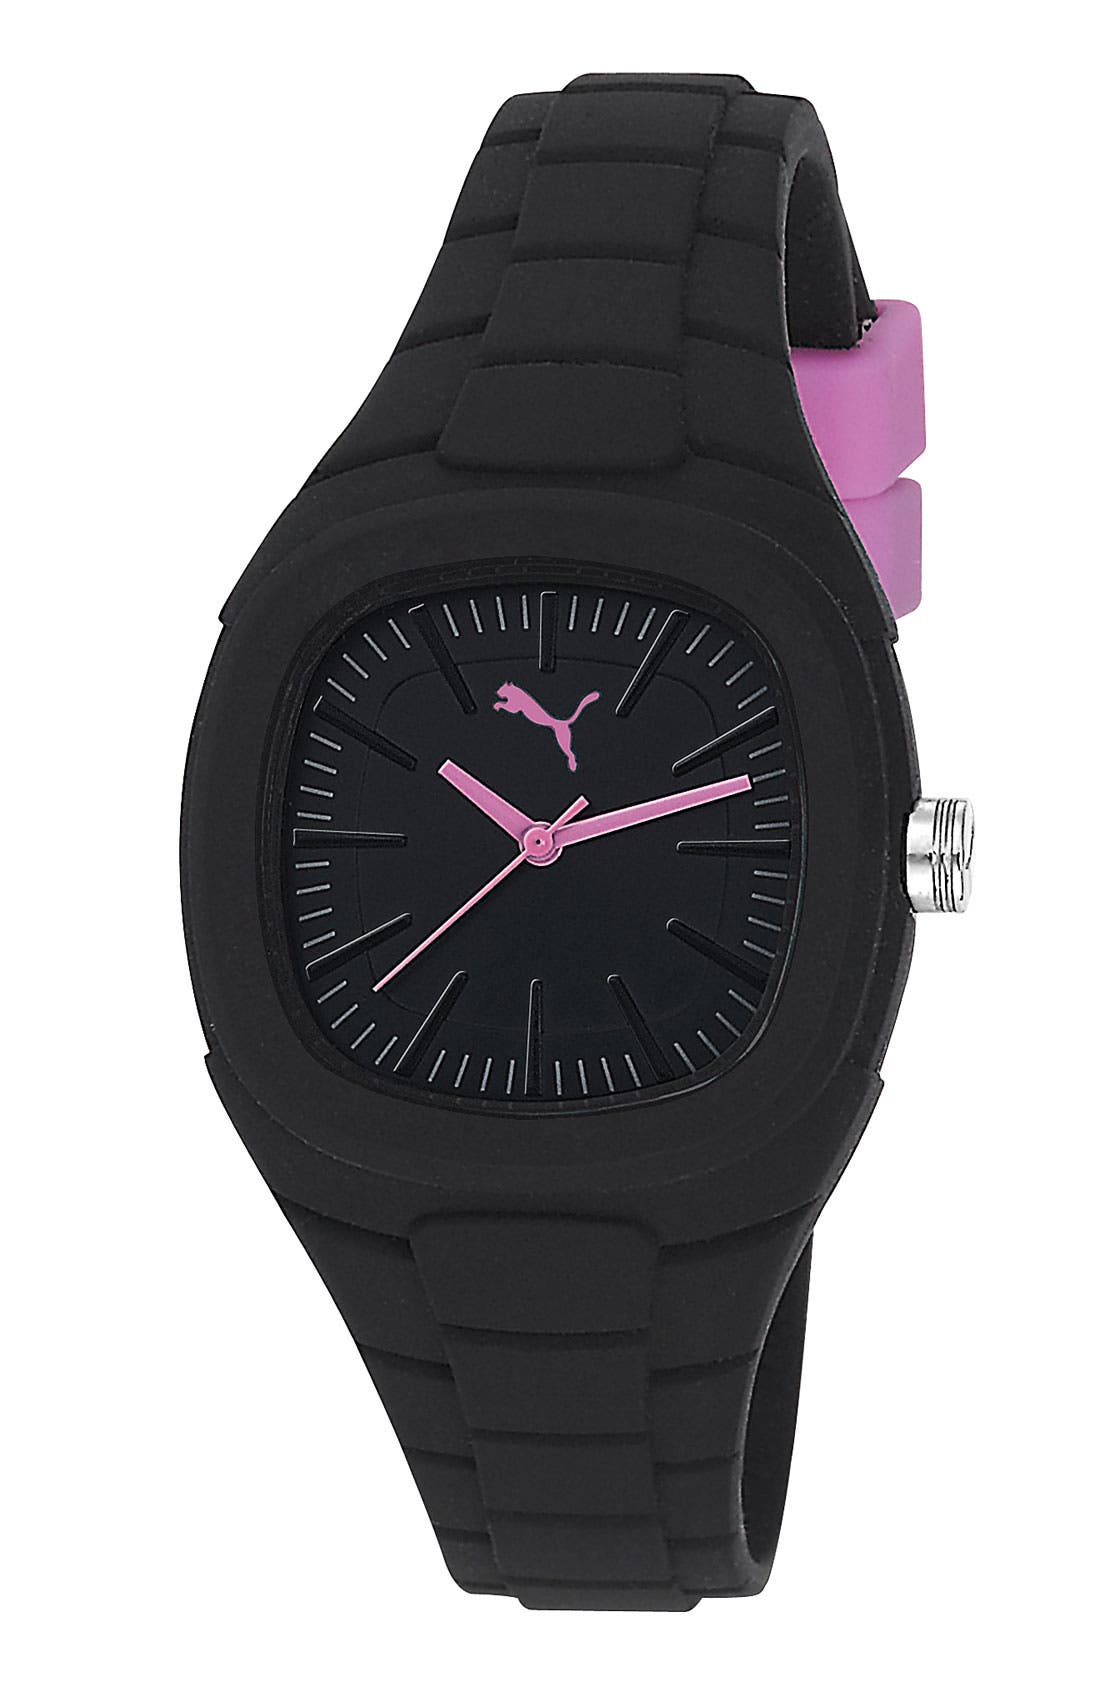 Alternate Image 1 Selected - PUMA 'Bubblegum - Small' Silicone Watch, 32mm x 36mm